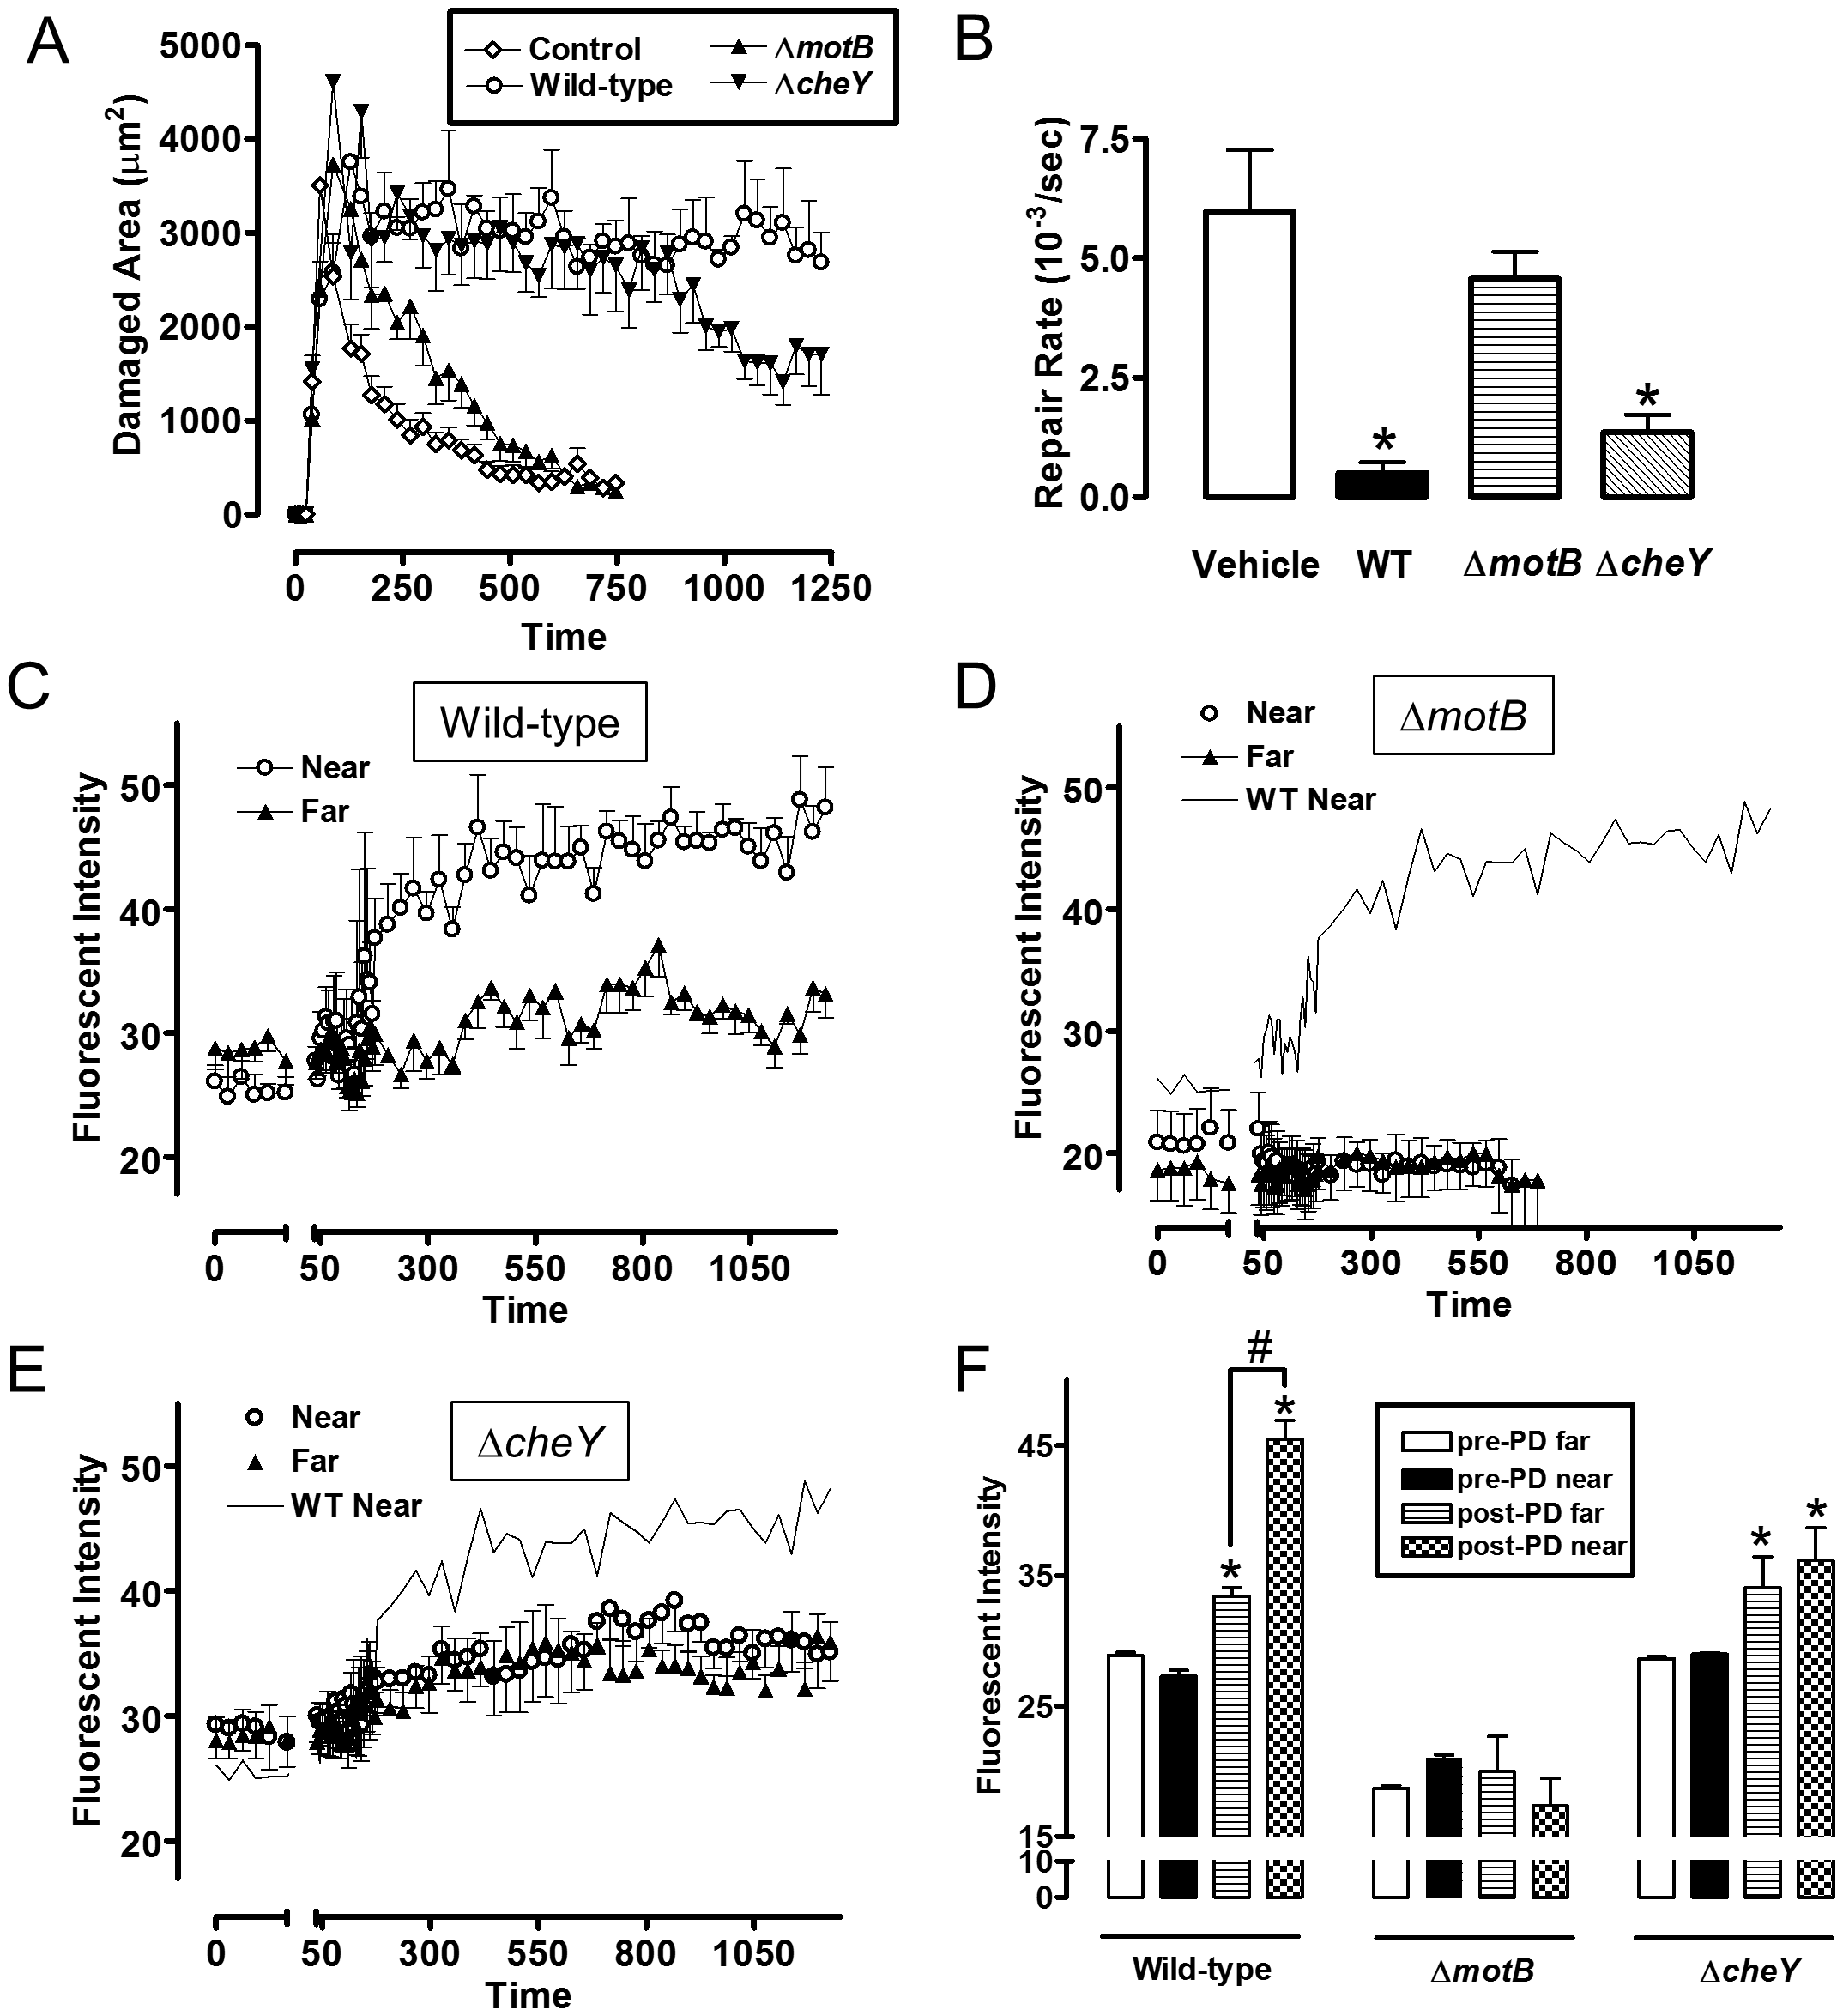 Quantifying effect of <i>H. pylori</i> on gastric epithelial repair after microscopic damage, and the localization of <i>H. pylori</i> during repair.